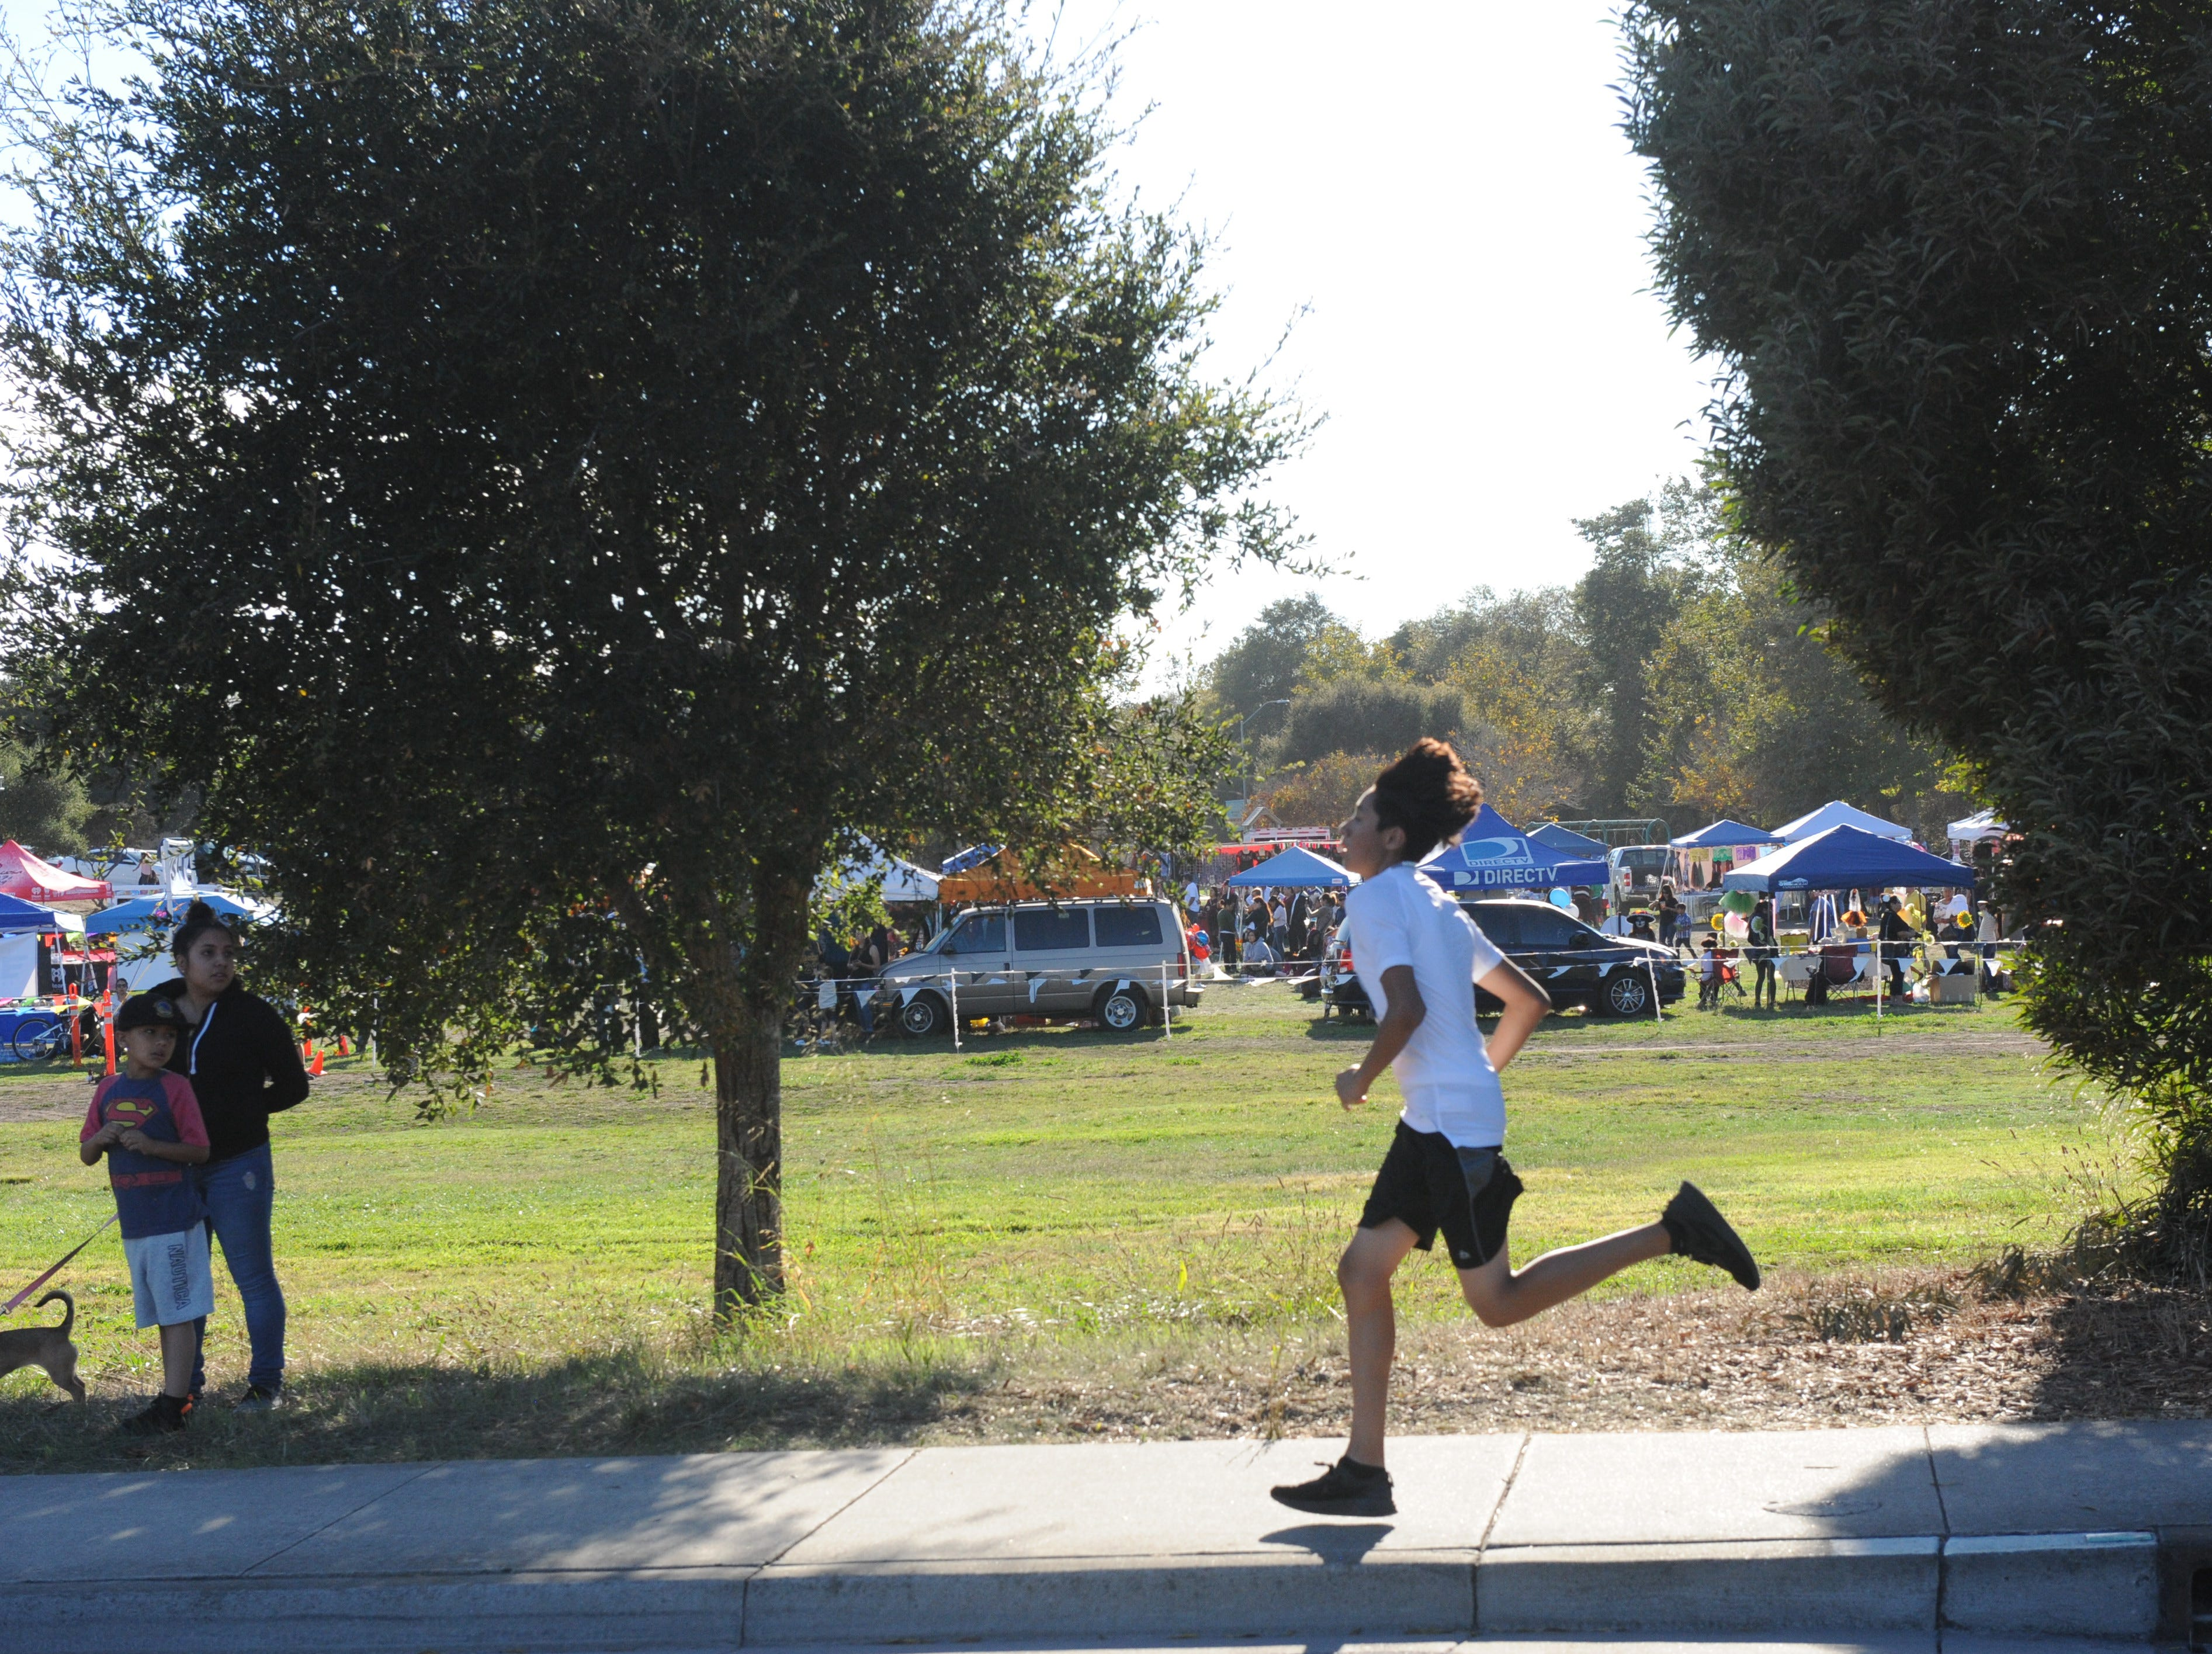 A runner races down Freedom Parkway at Sunday's Día de los Muertos 5k benefit run, with the festivities in the distance at Natividad Creek Park.